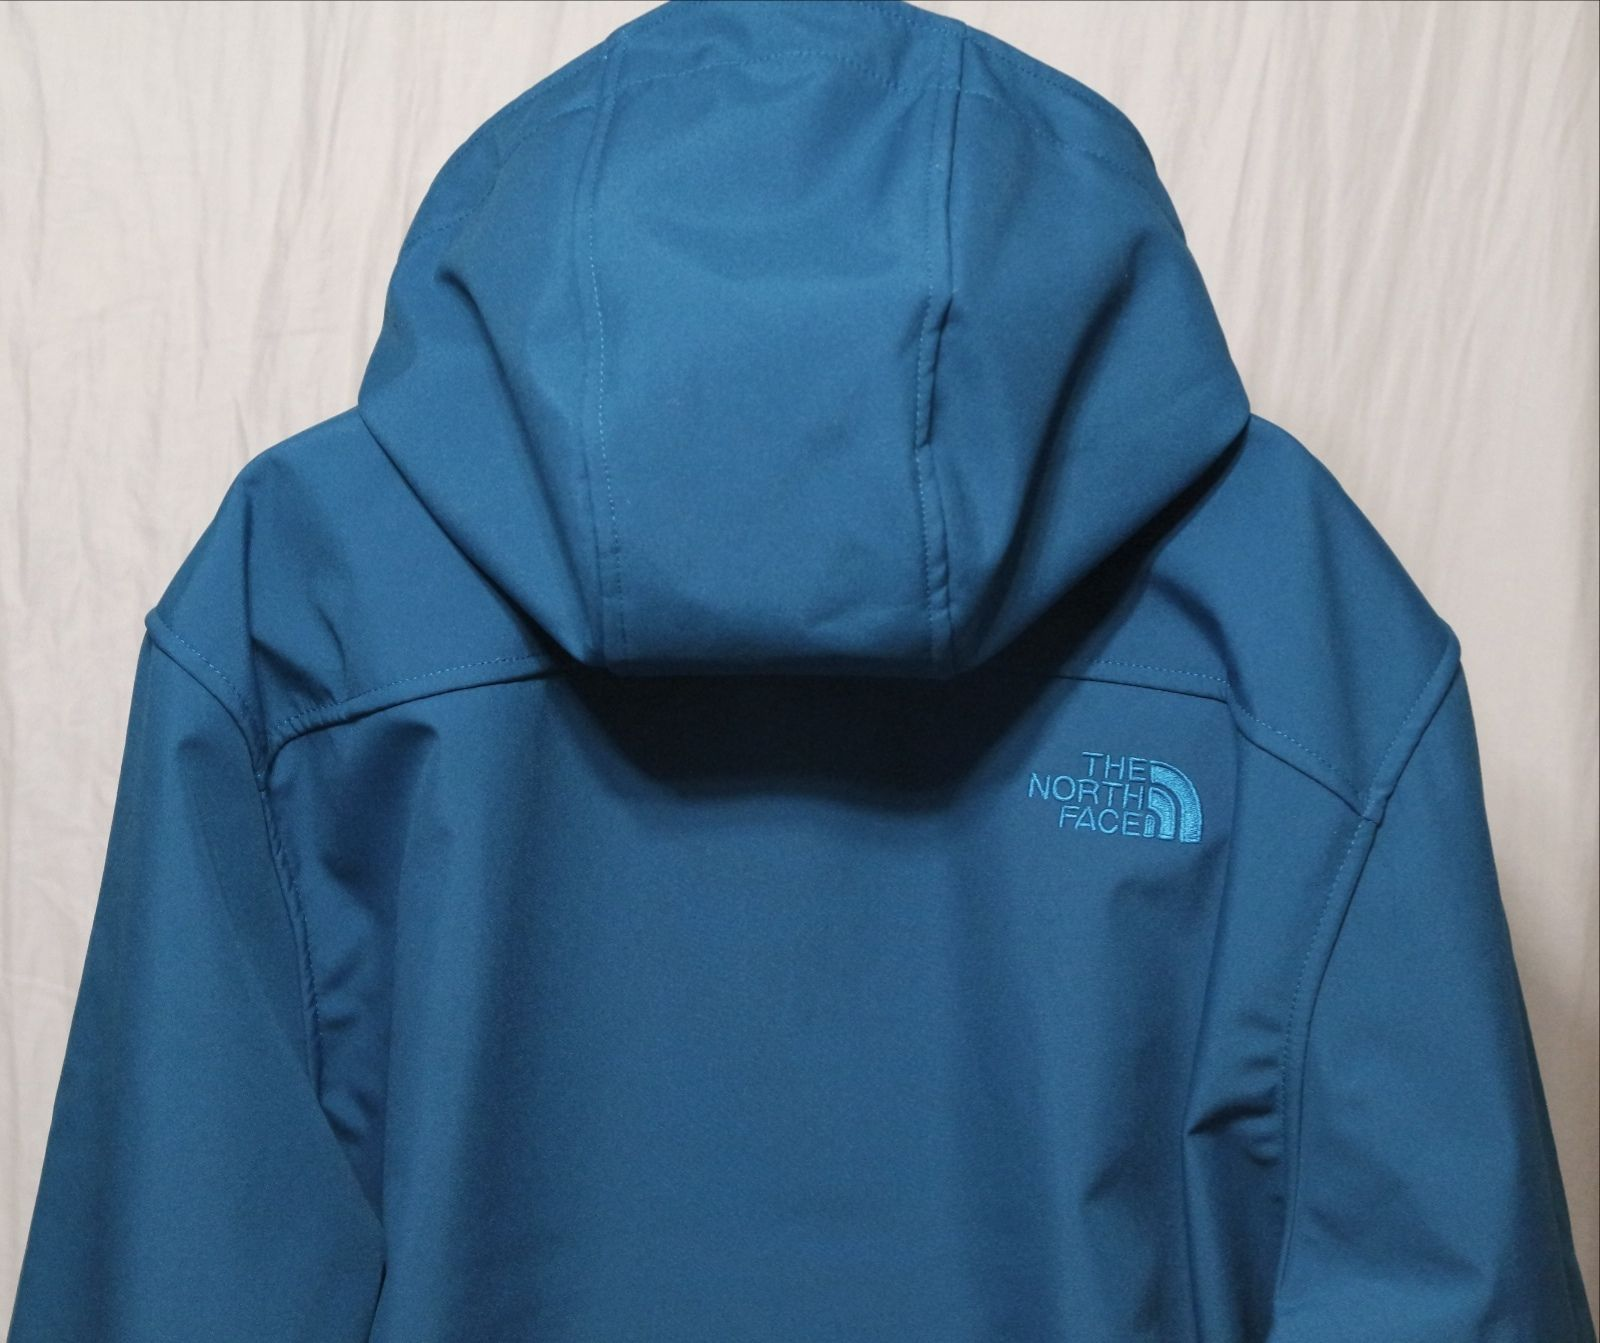 bb5bea2bb The North Face Men's Windwall Jacket, and 50 similar items